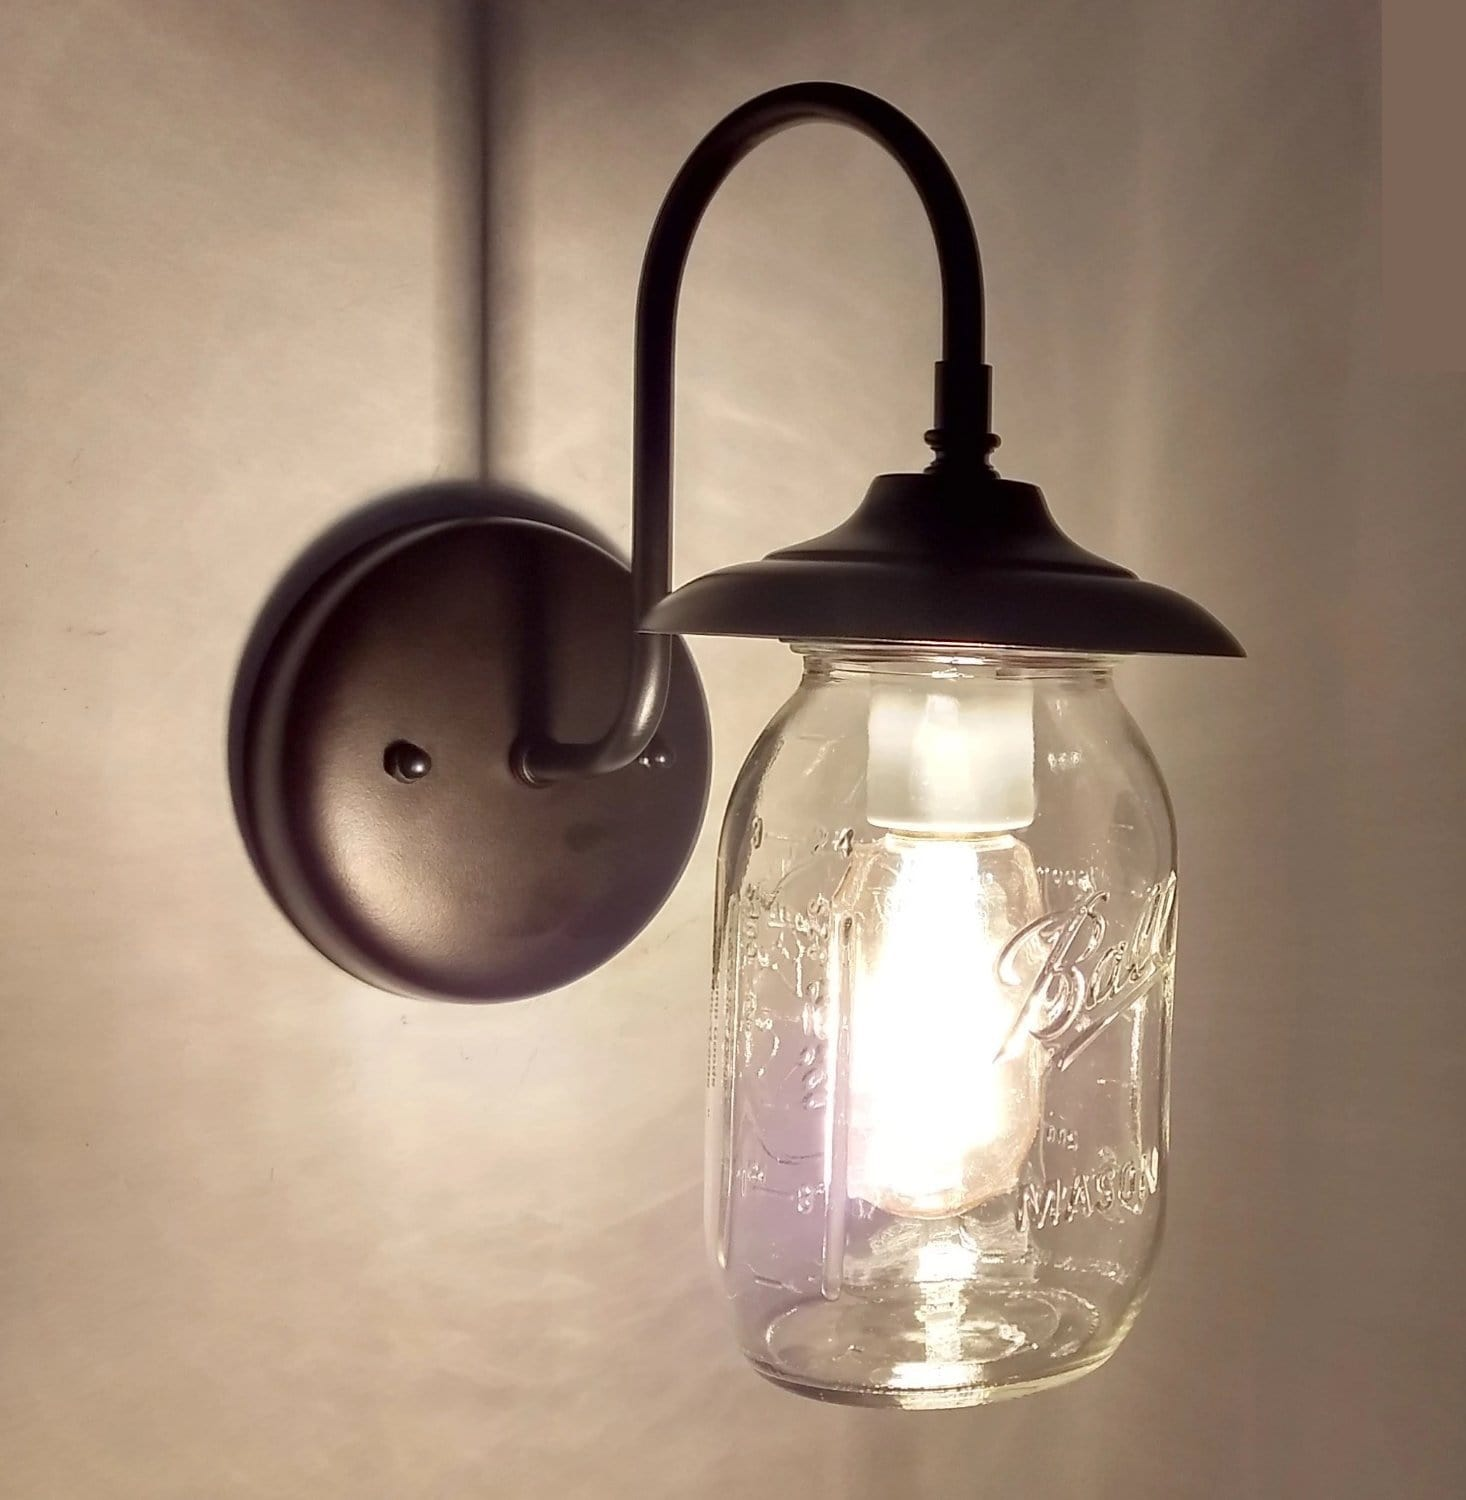 sconce visual thomas finish cfm o shade wall and item antique light shown natural inch comfort nickel wide bryant brien paper in